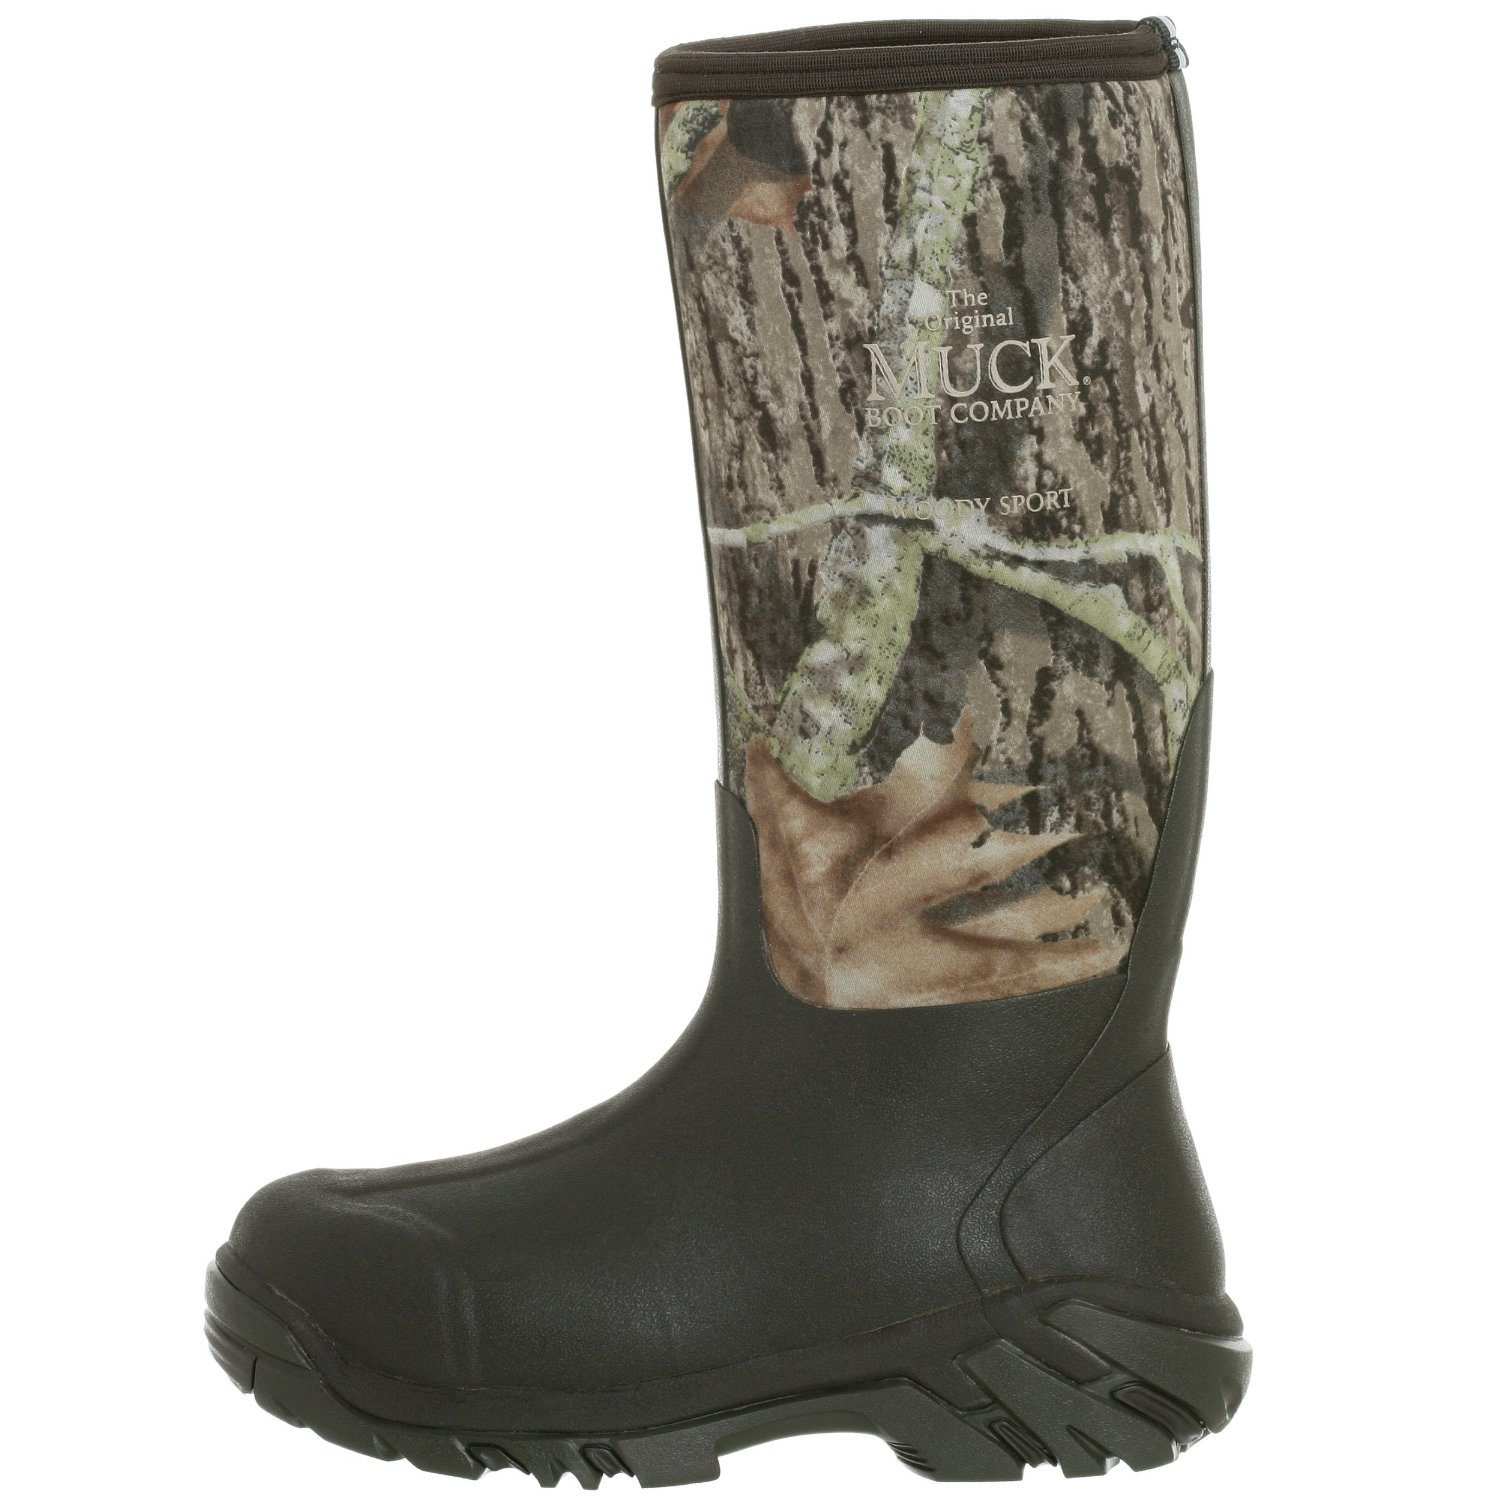 Muck Woody Sport Boot Camo Men's 9 Women's 10 WDS-9